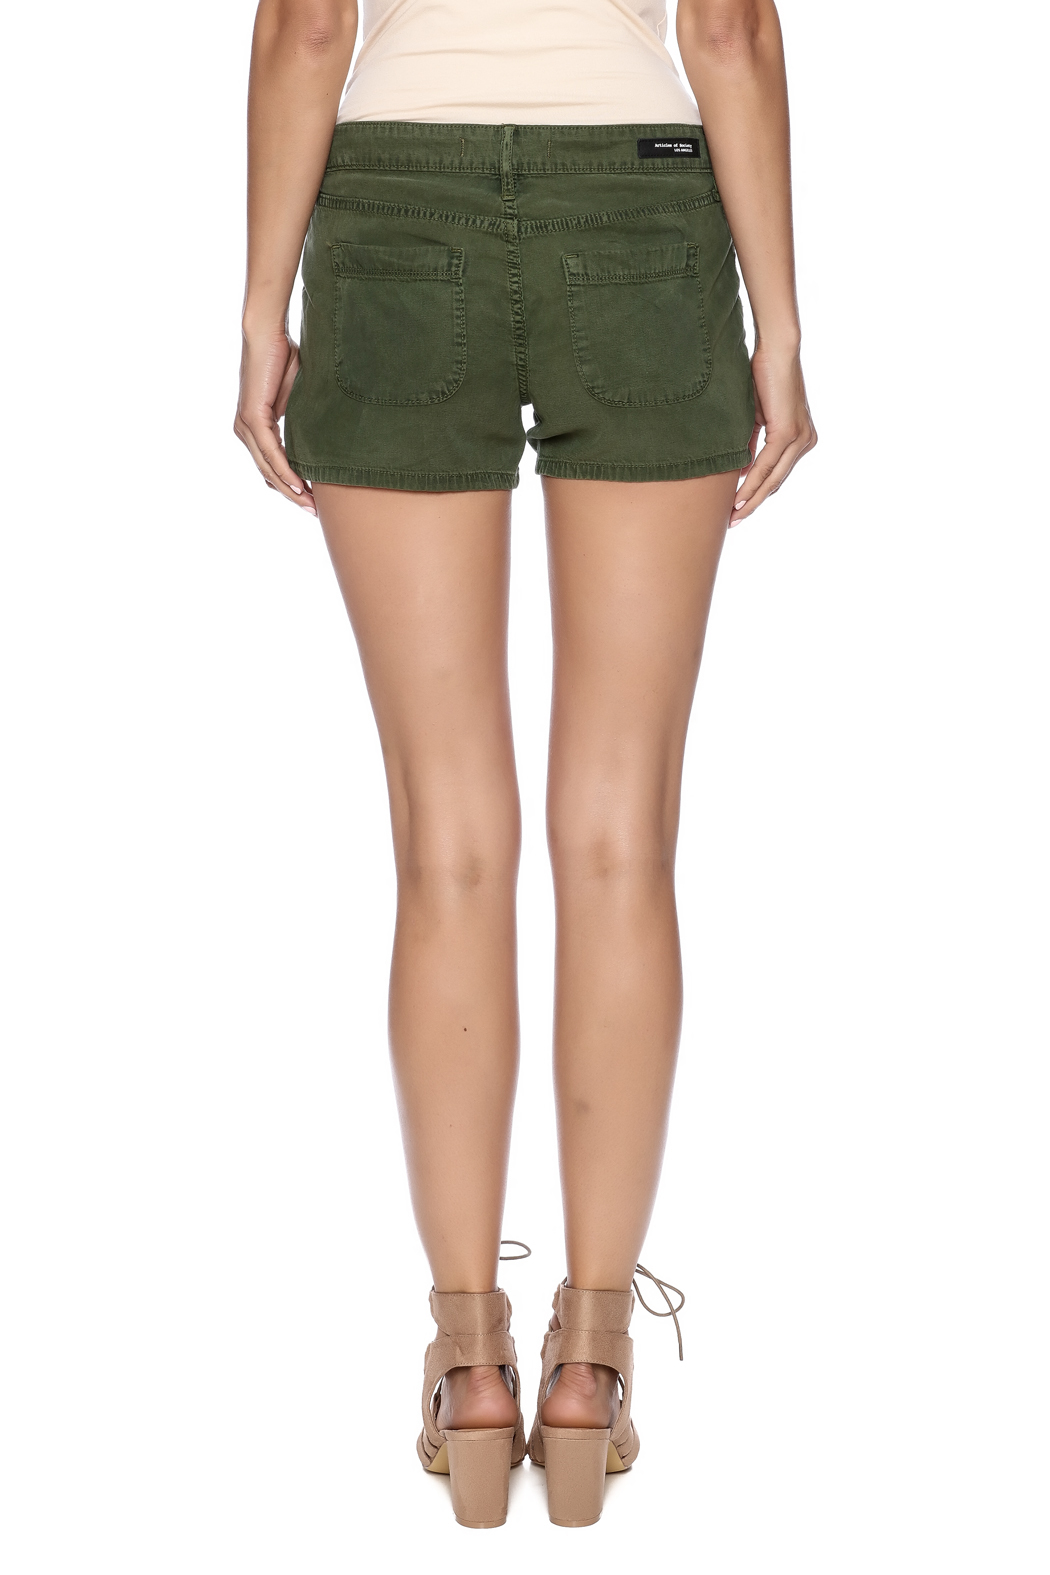 Articles of Society Army Green Denim Shorts from Fayetteville by ...